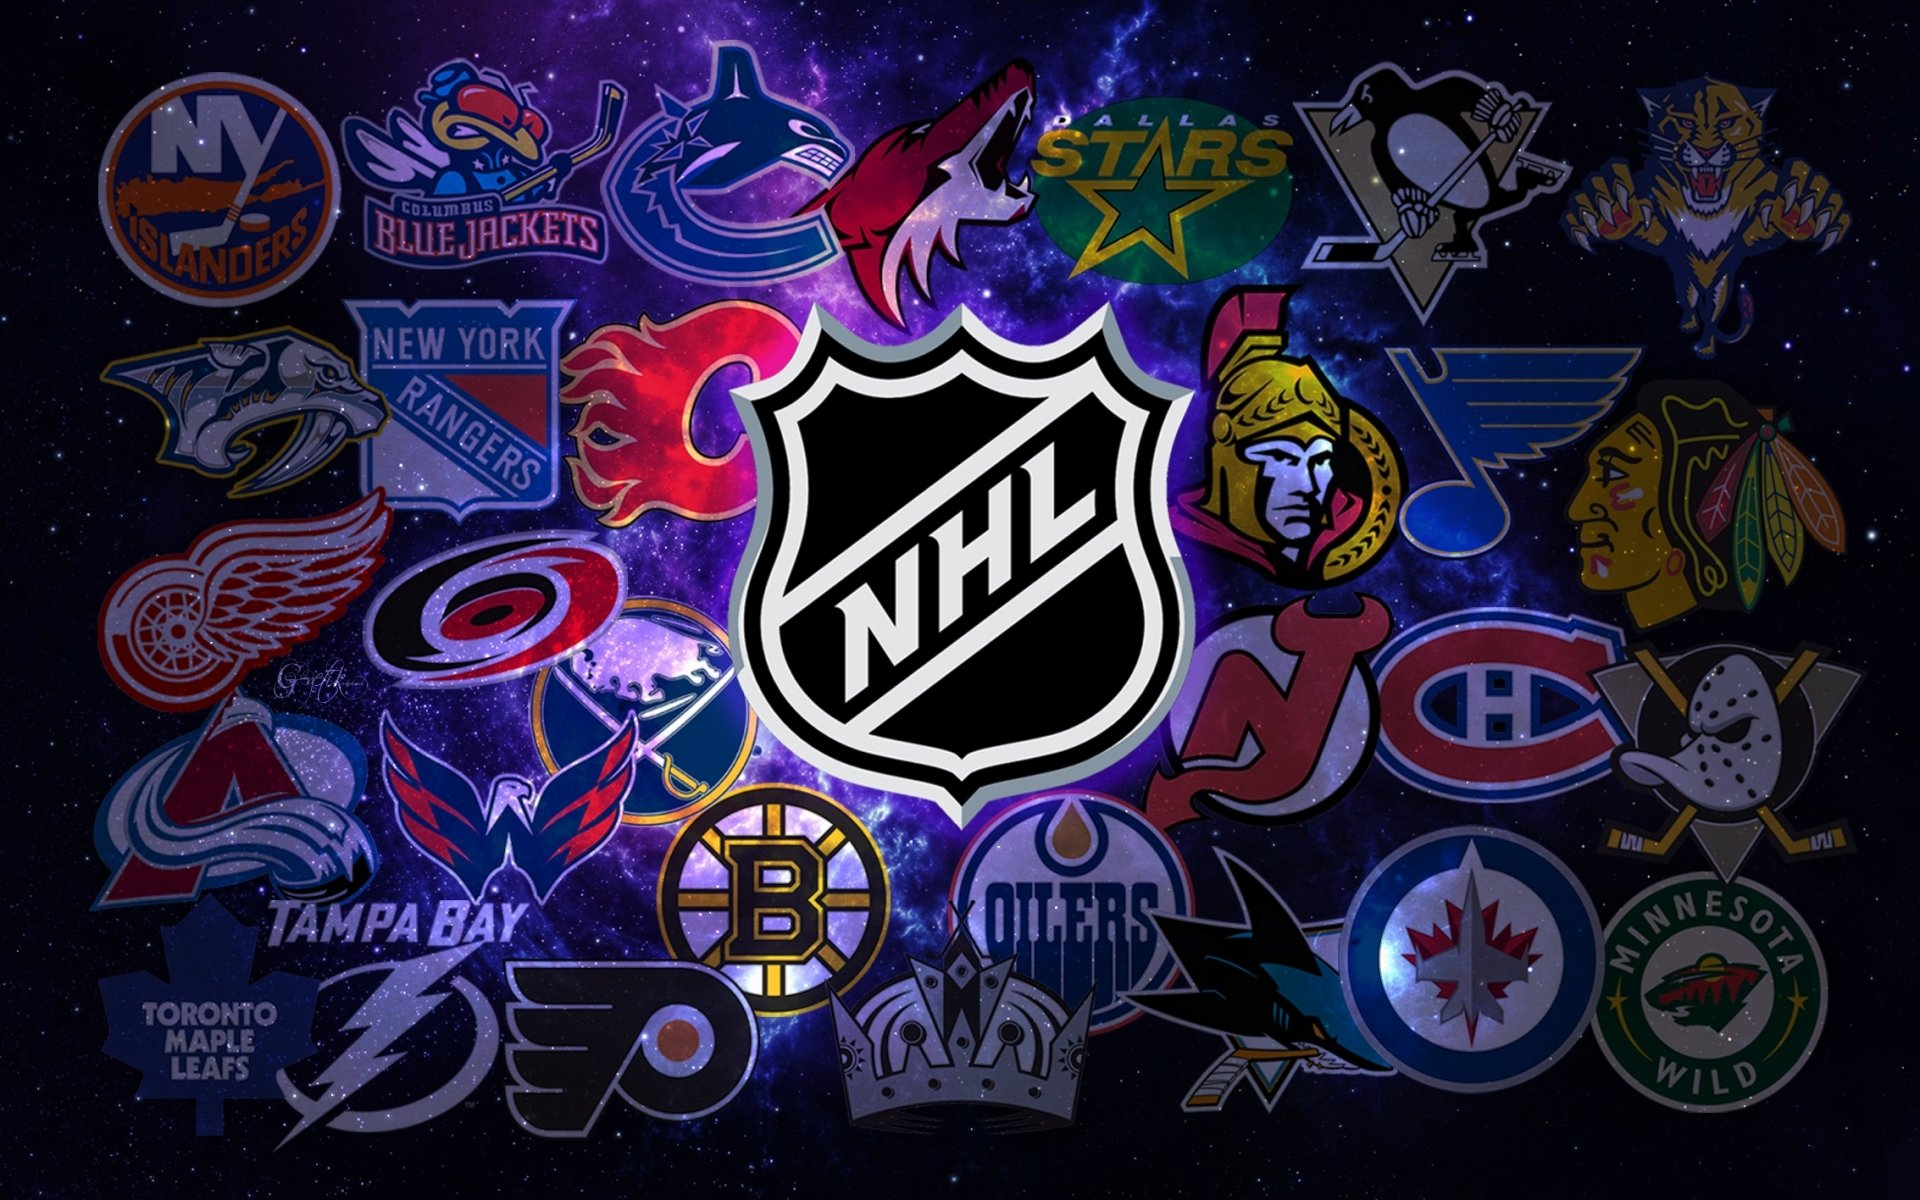 45 New Nhl Logo Wallpaper On Wallpapersafari